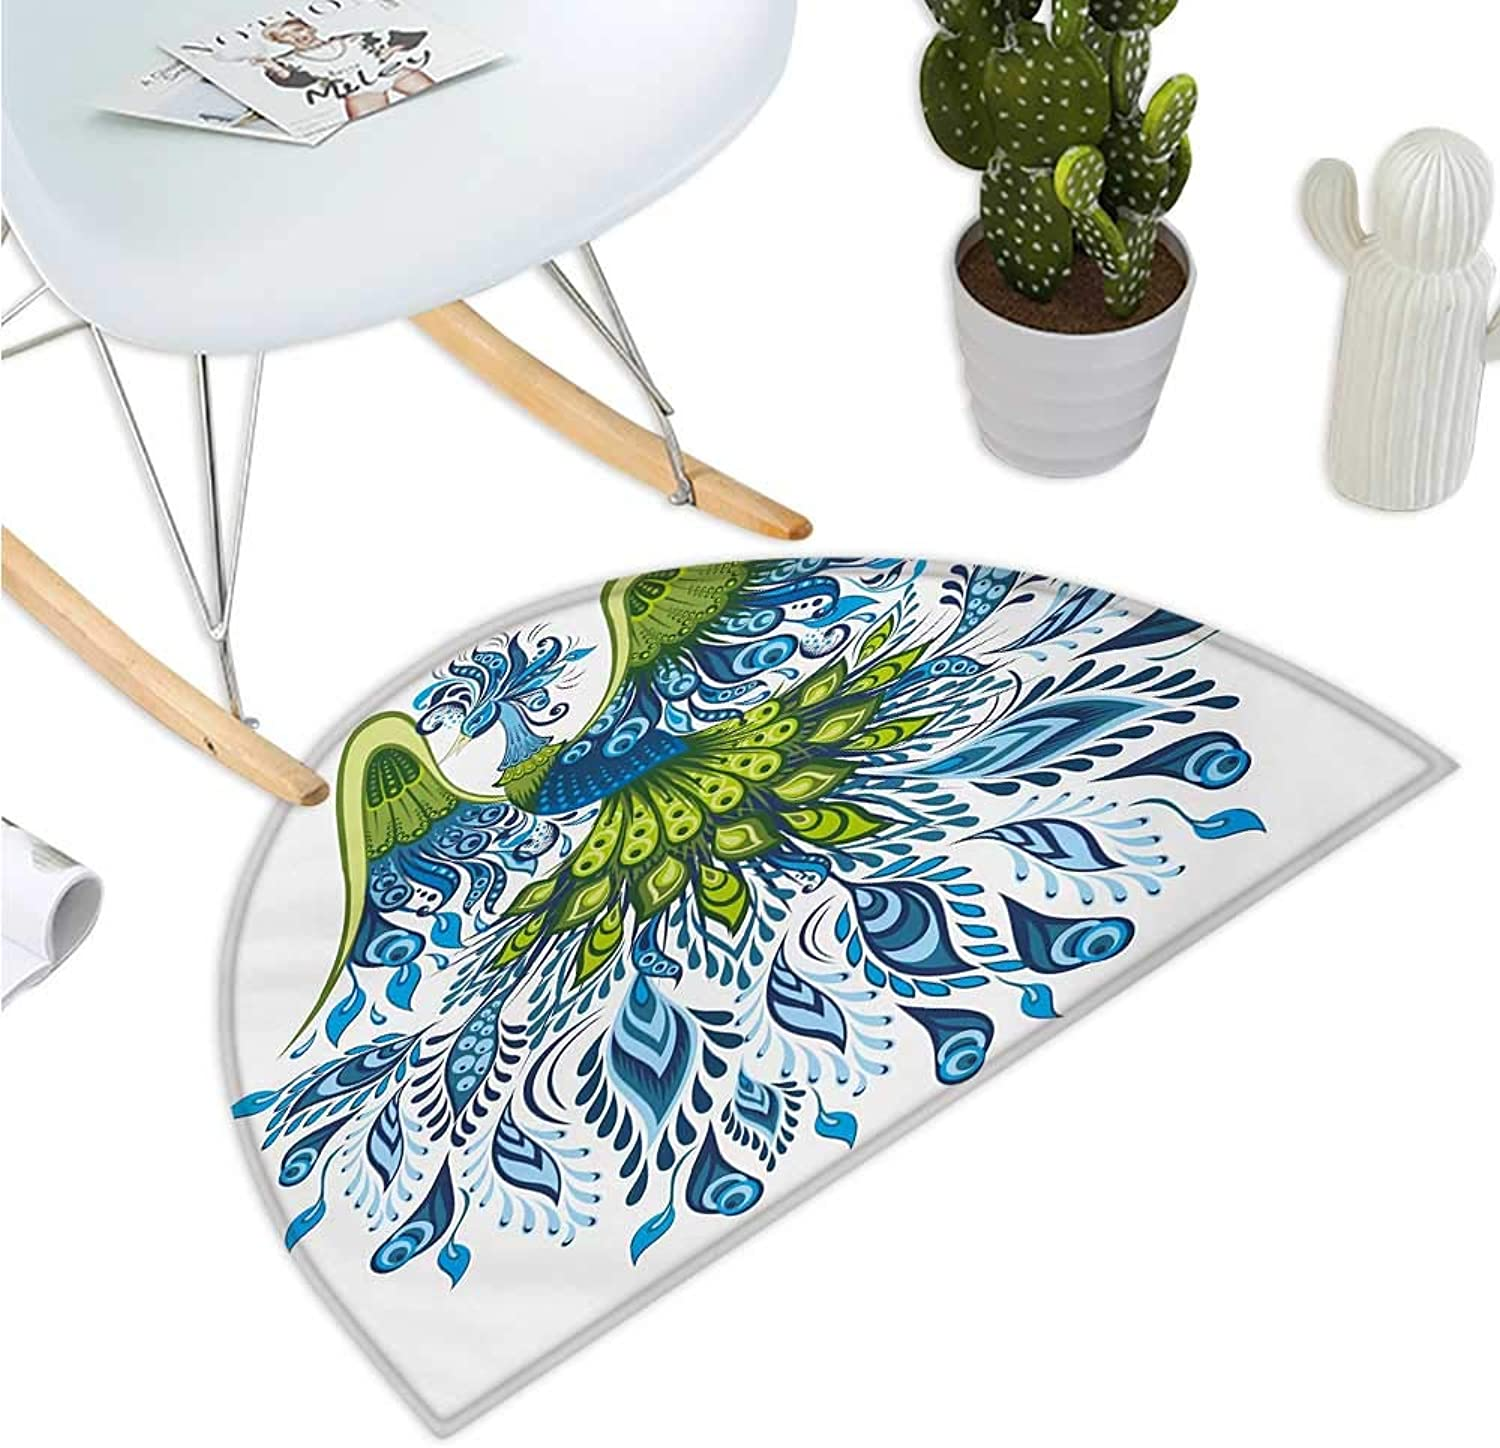 Peacock Semicircular Cushion Abstract Exotic Bird Figure with Stylized Long Tail and Wings Floral Swirled Leaves Bathroom Mat H 43.3  xD 64.9  bluee Green